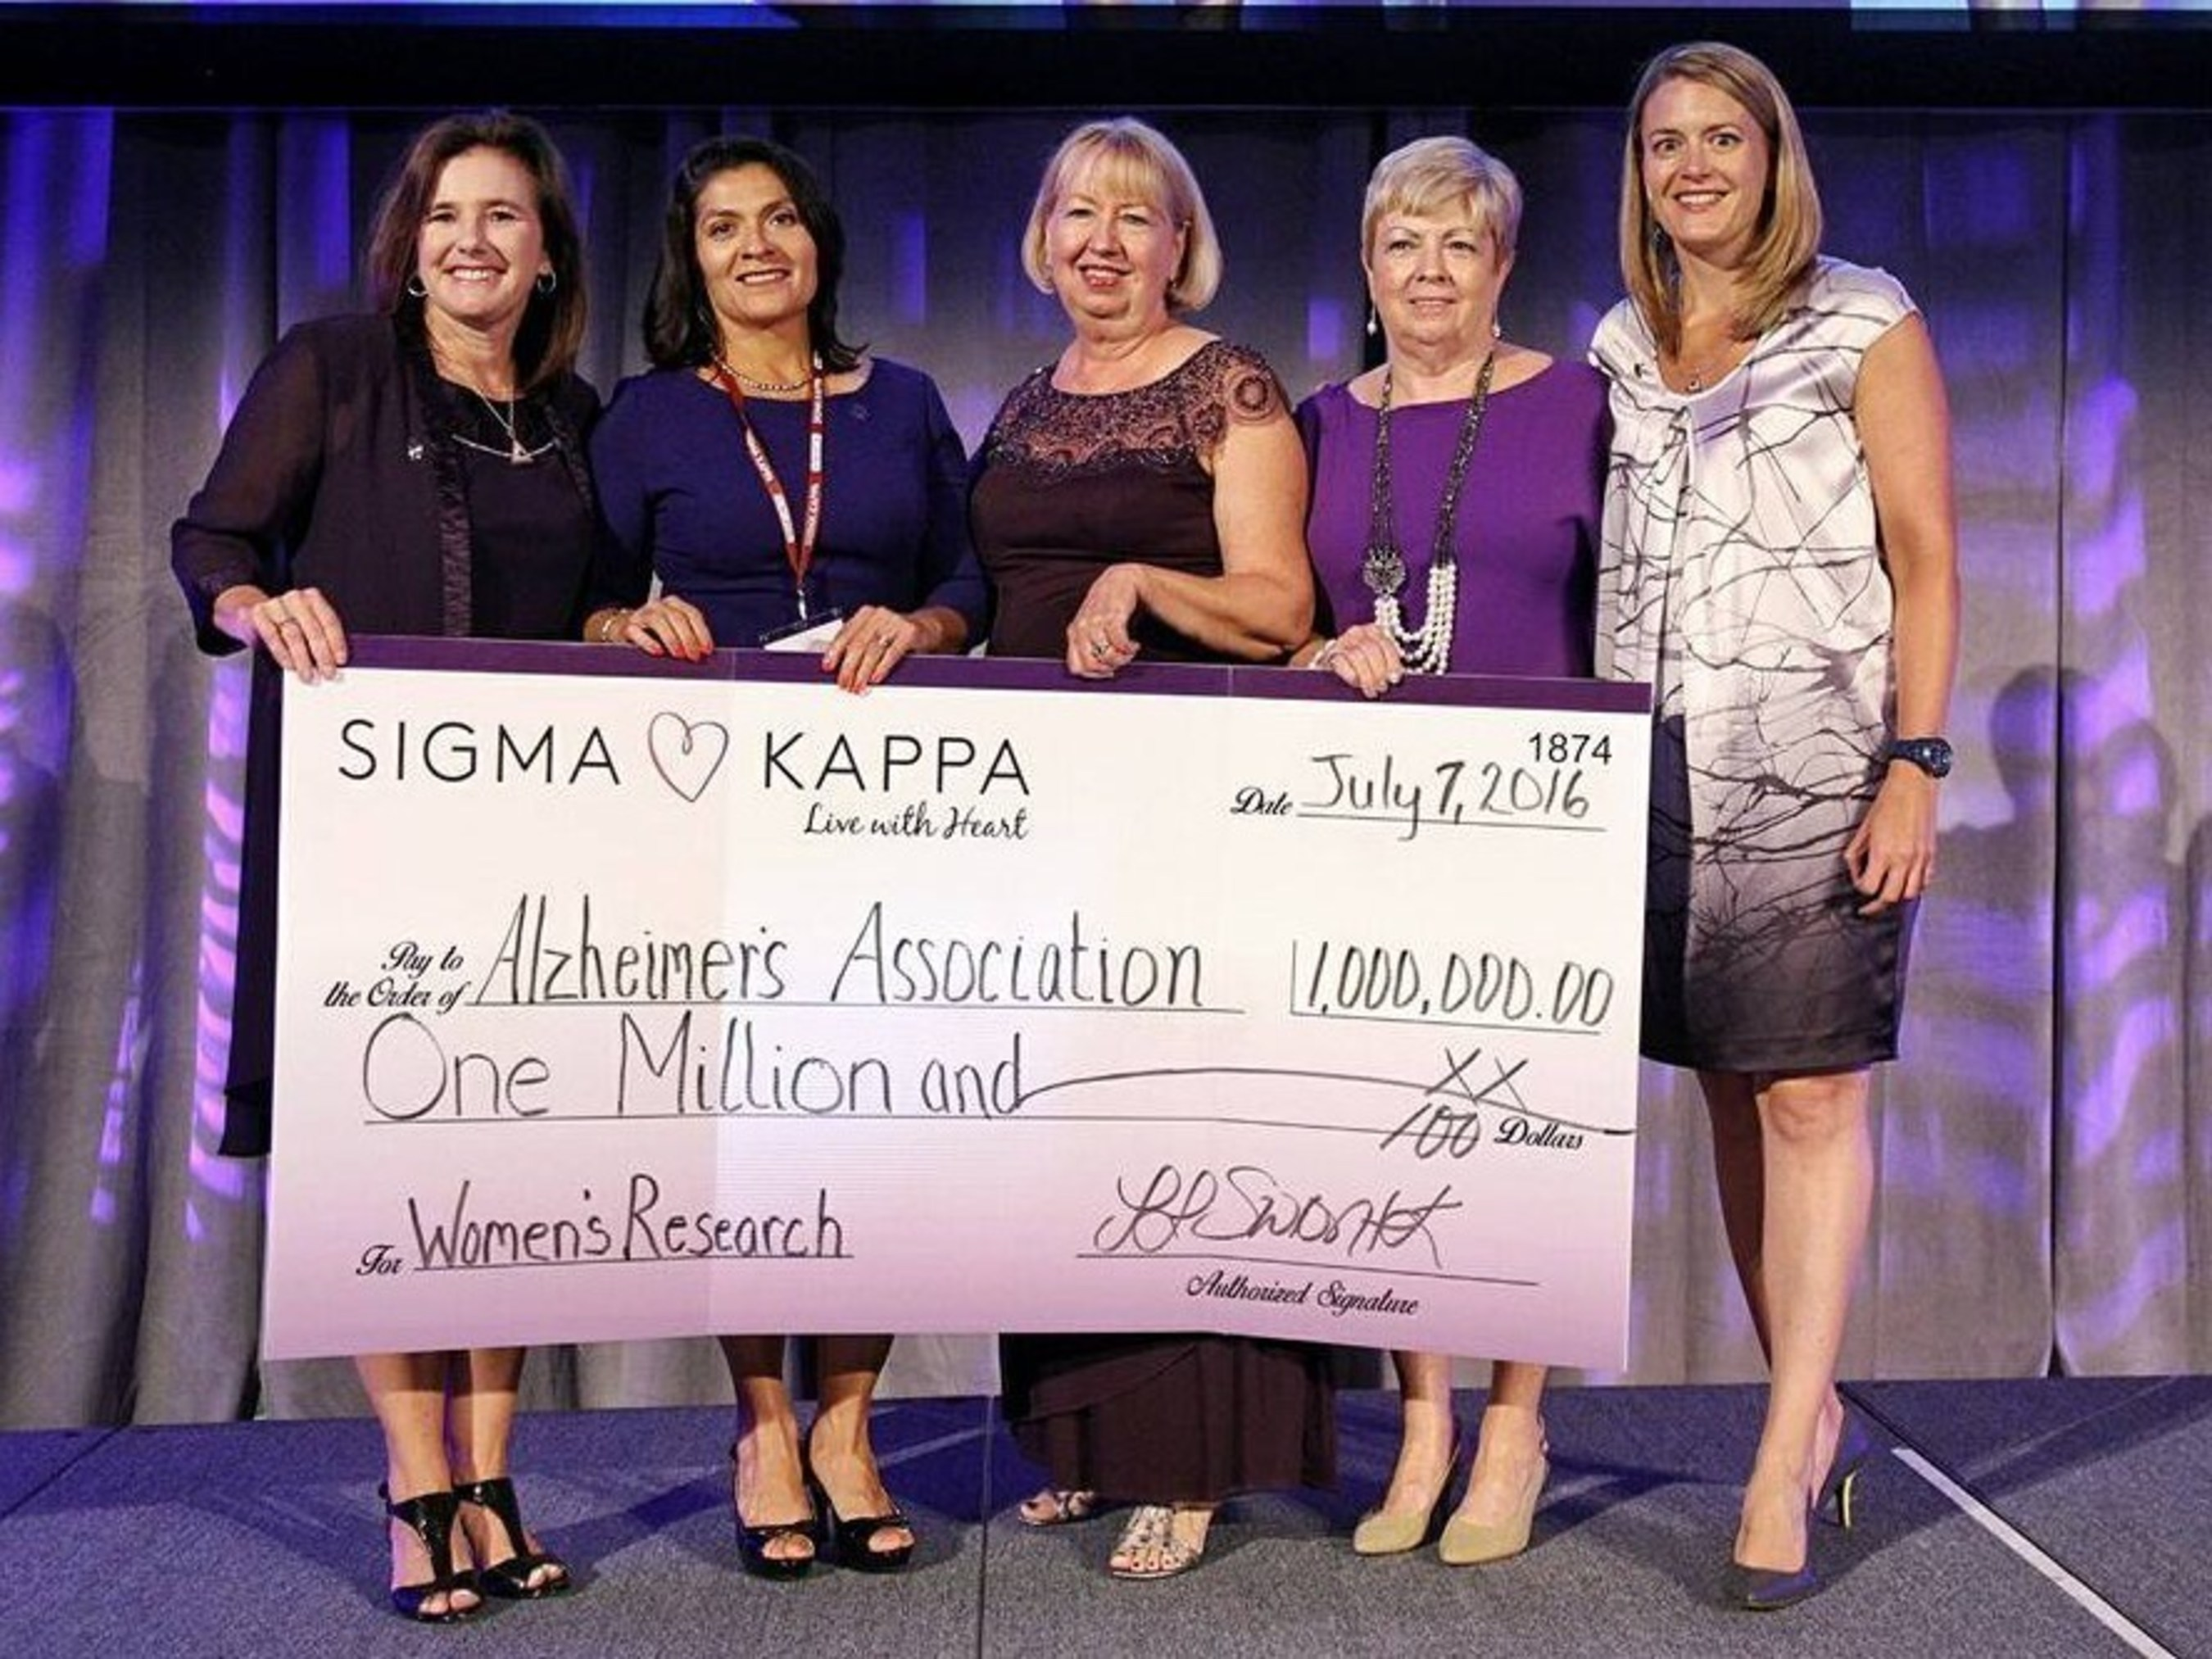 Pictured left to right: Cheri De Jong, outgoing Sigma Kappa president; Dr. Maria Carrillo, Alzheimer's Association's Chief Science Officer; Carolyn Tieger, Foundation Trustee; Sarah Womble, Foundation President; and Ann O'Connell, Foundation Trustee